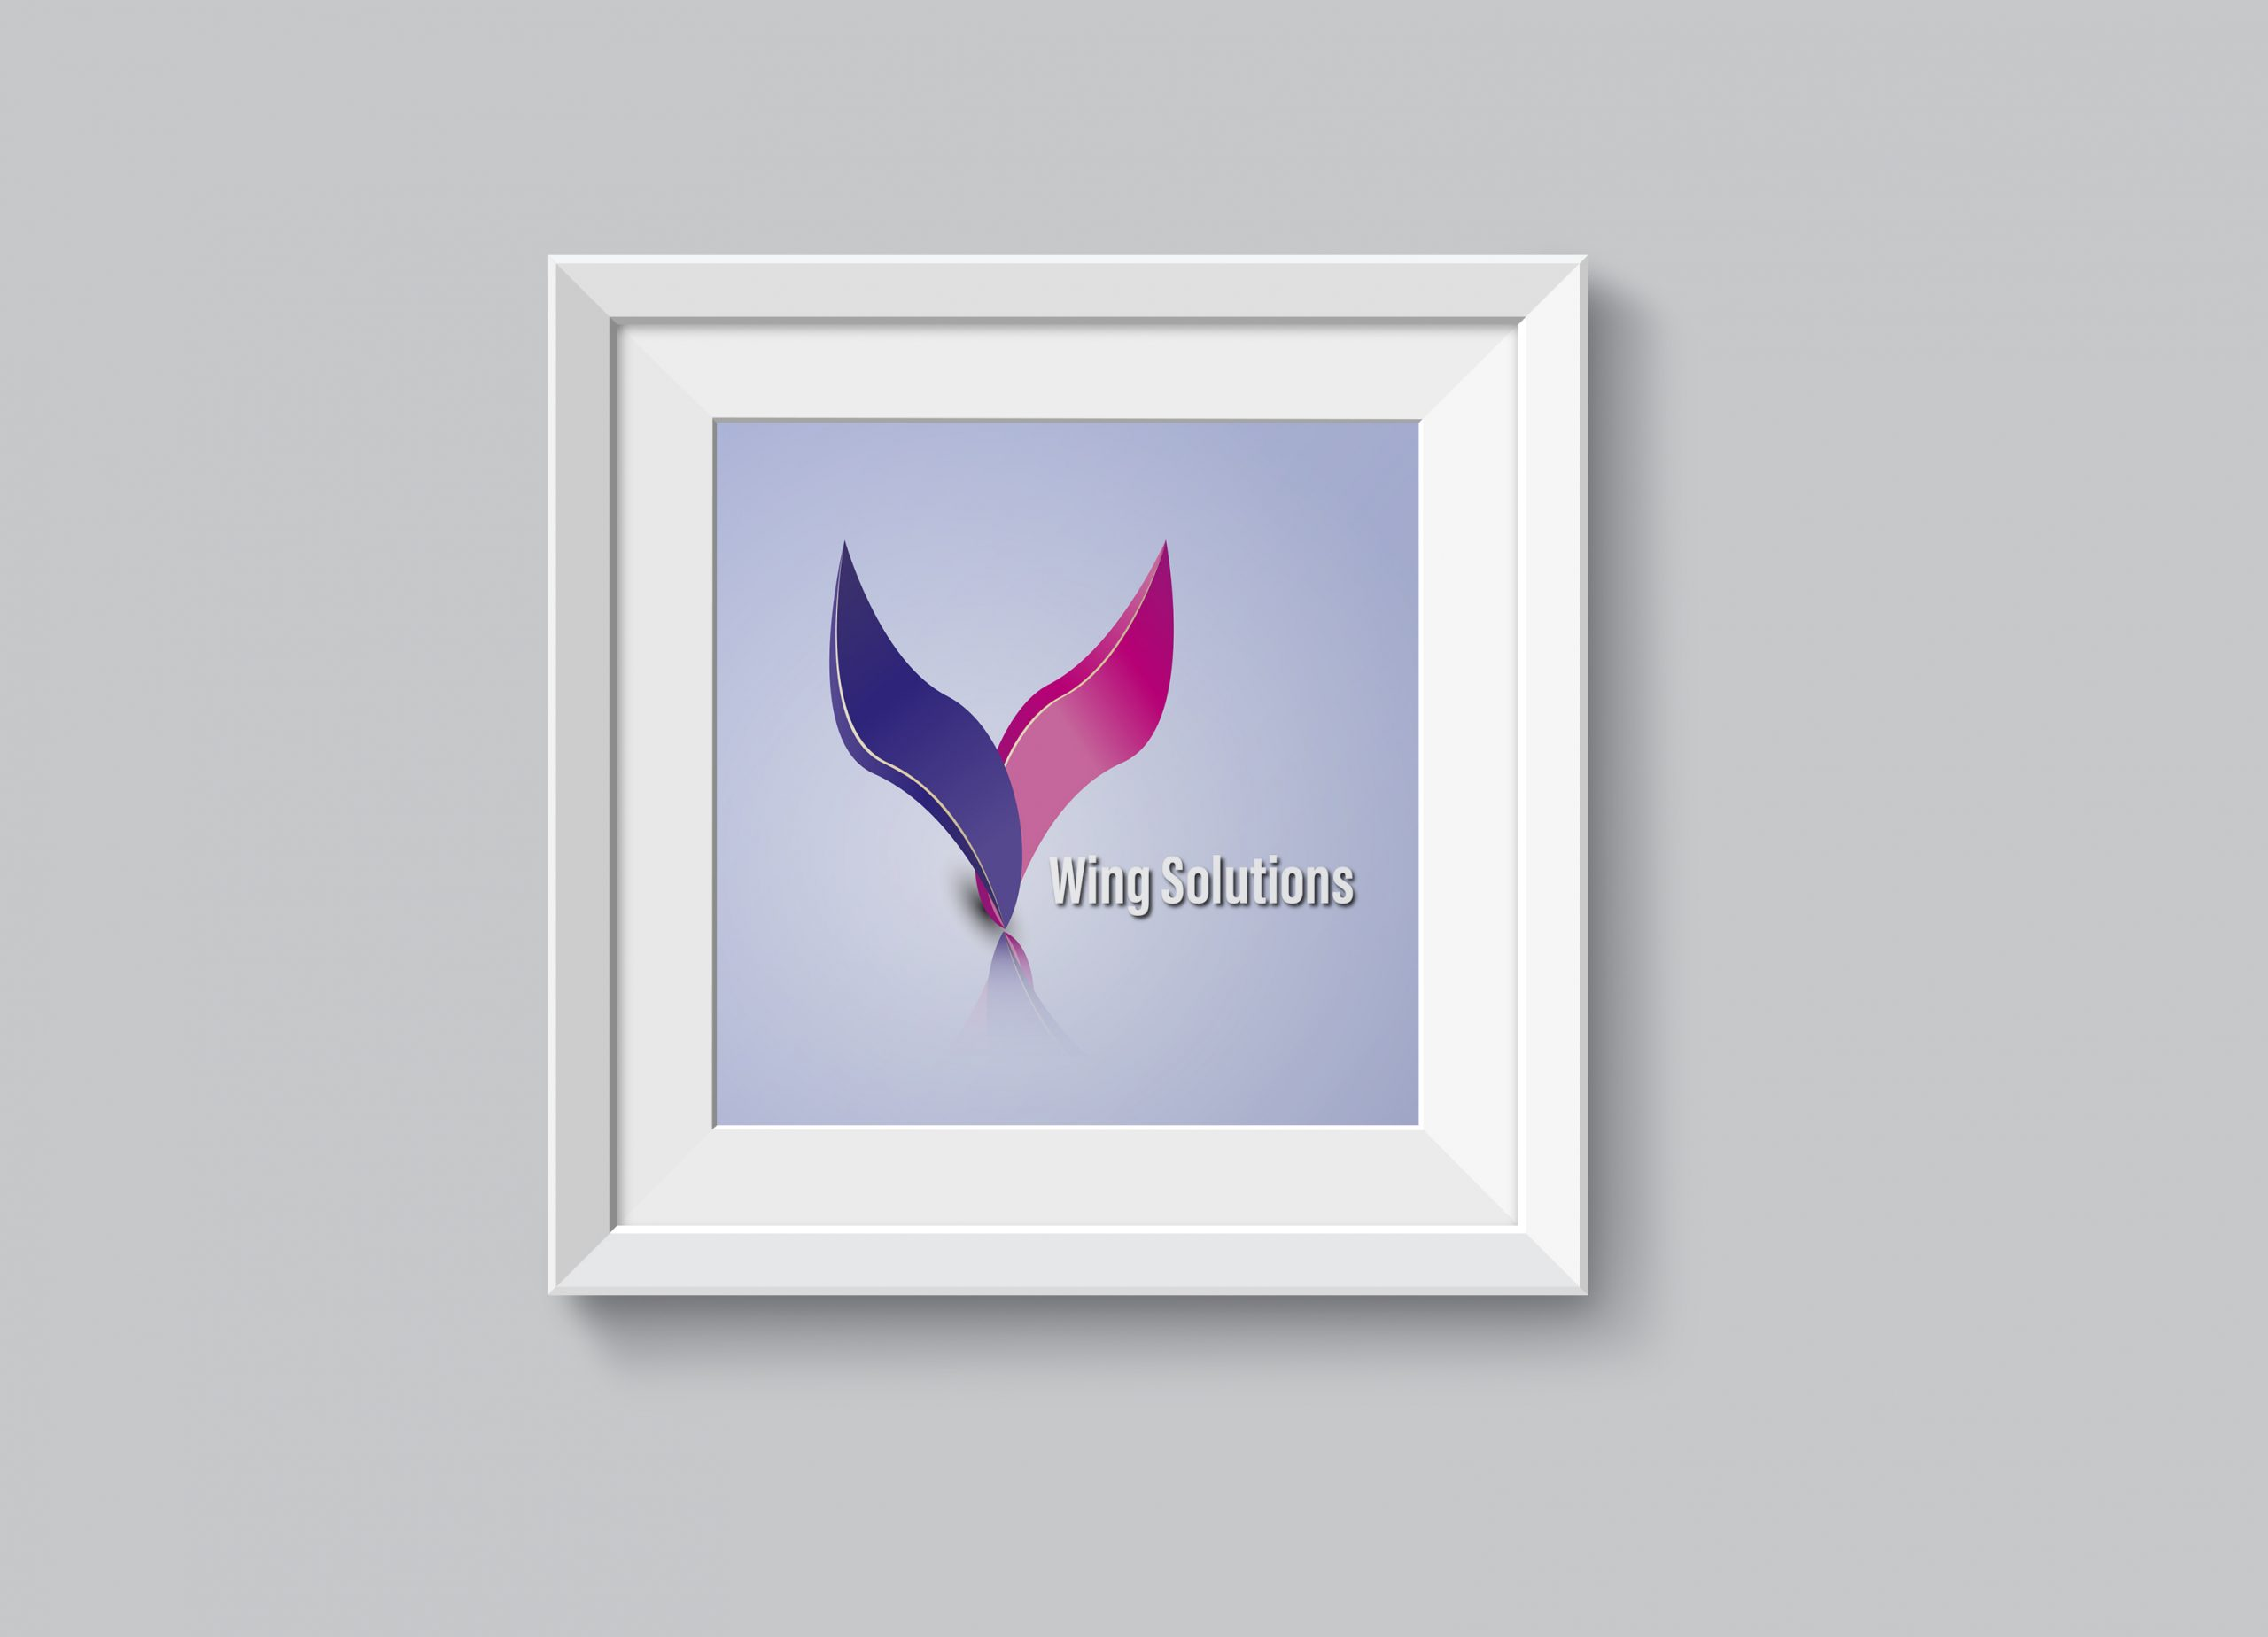 Wing-Solutions-logo-Template